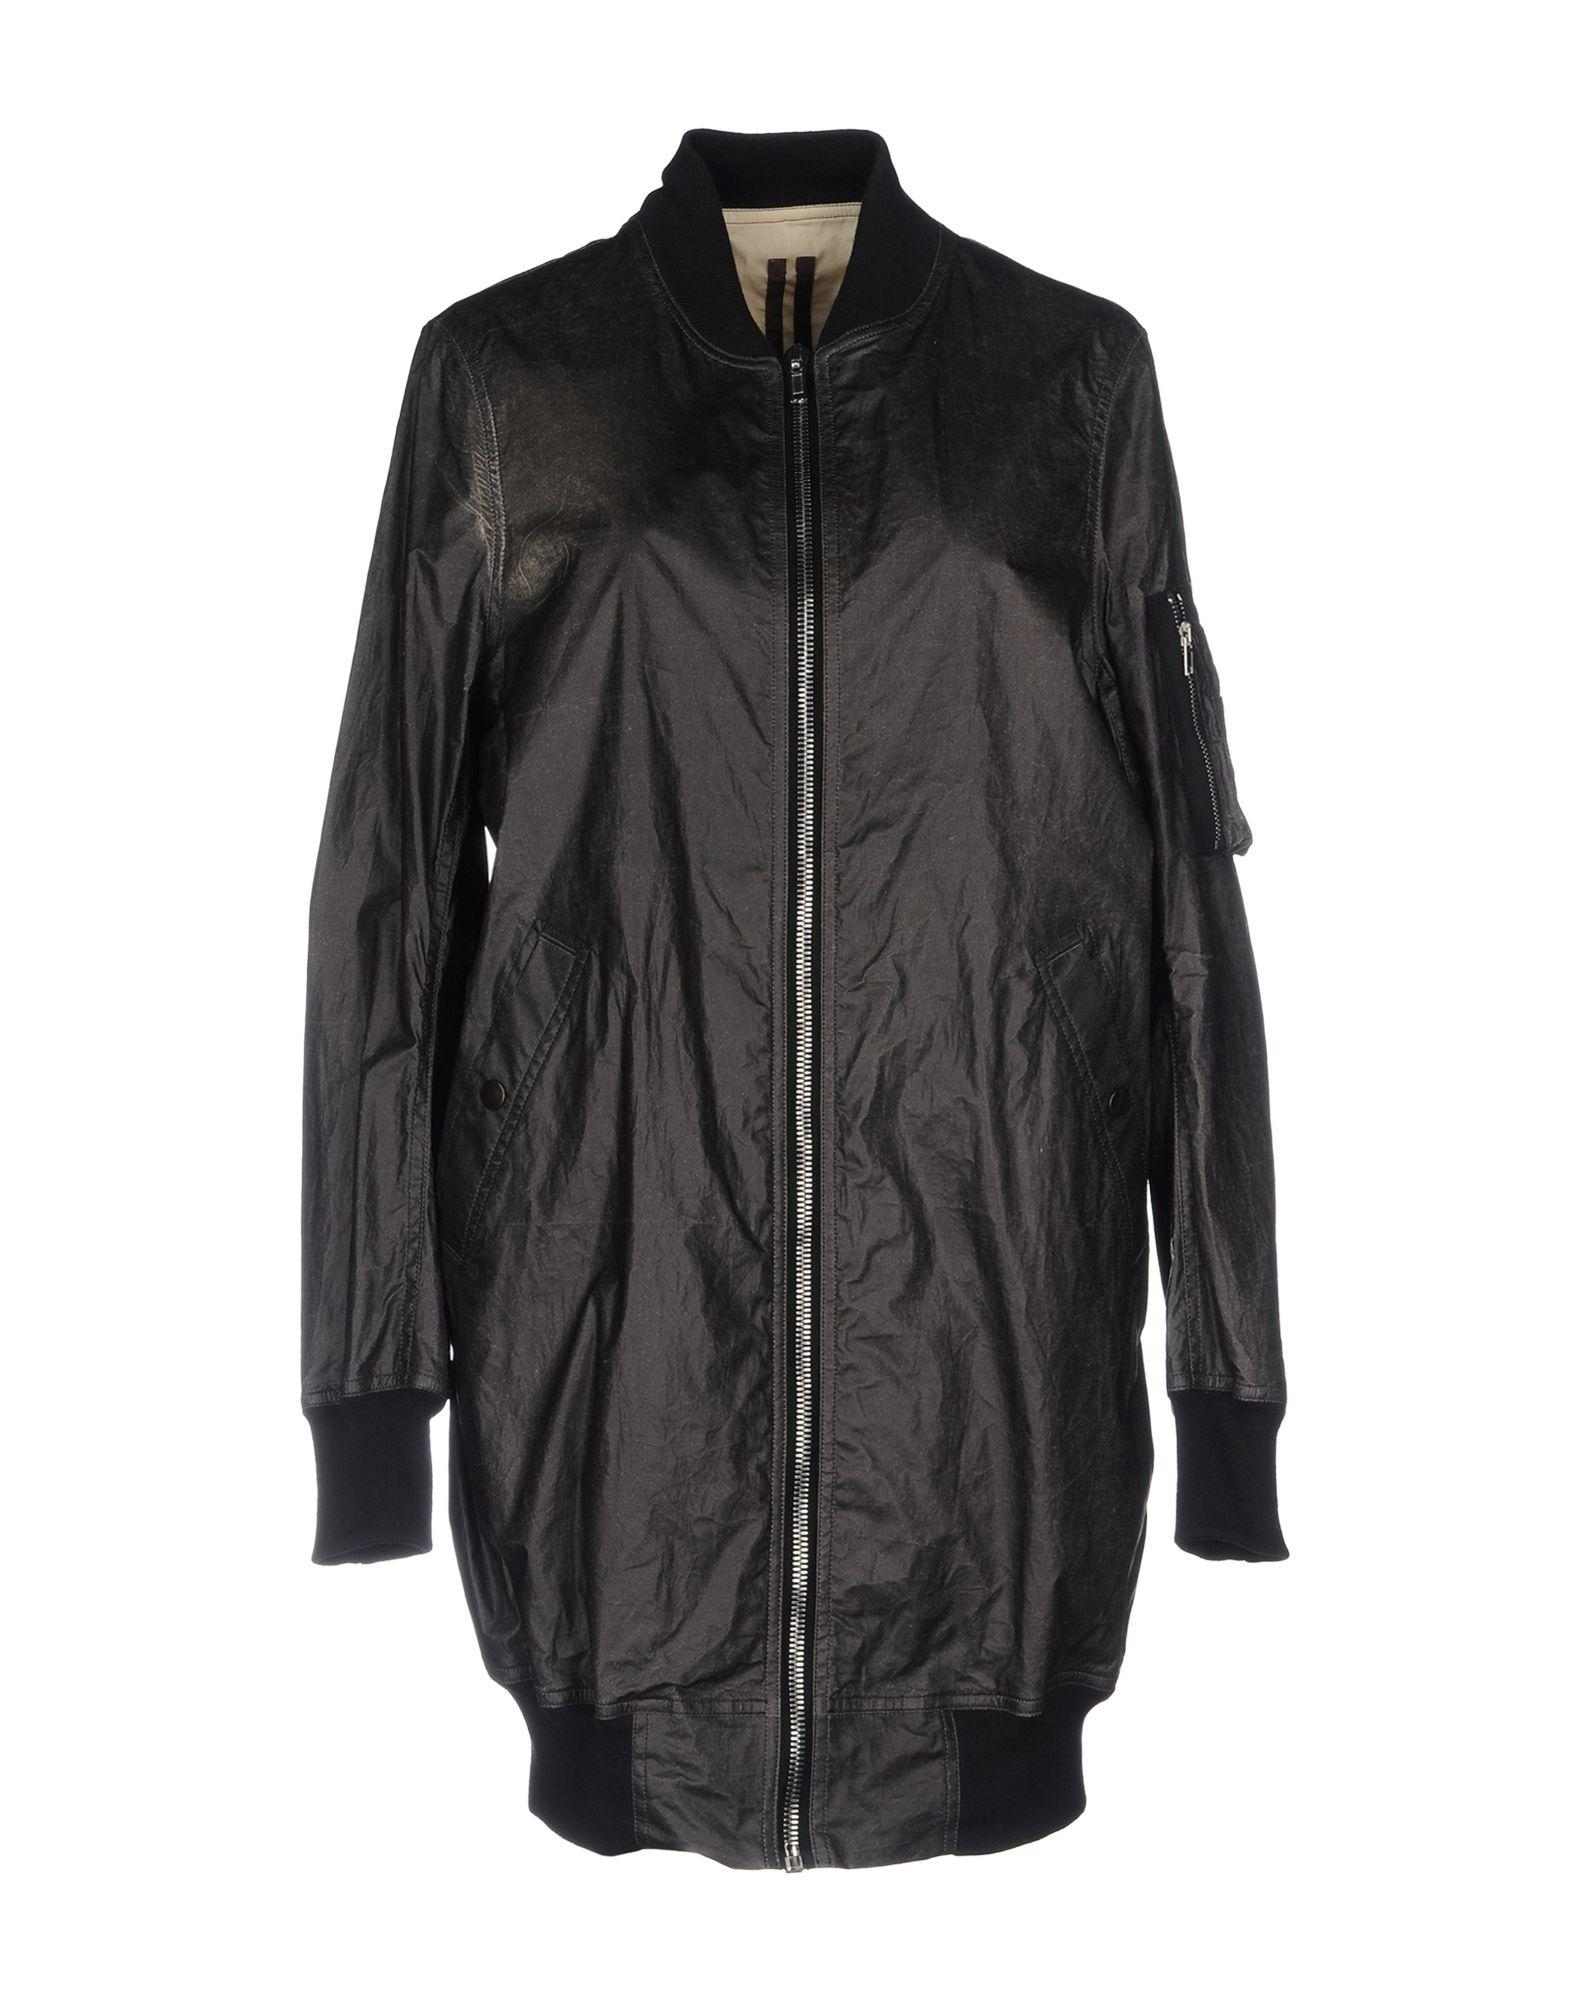 Rick Owens Drkshdw Jacket In Black